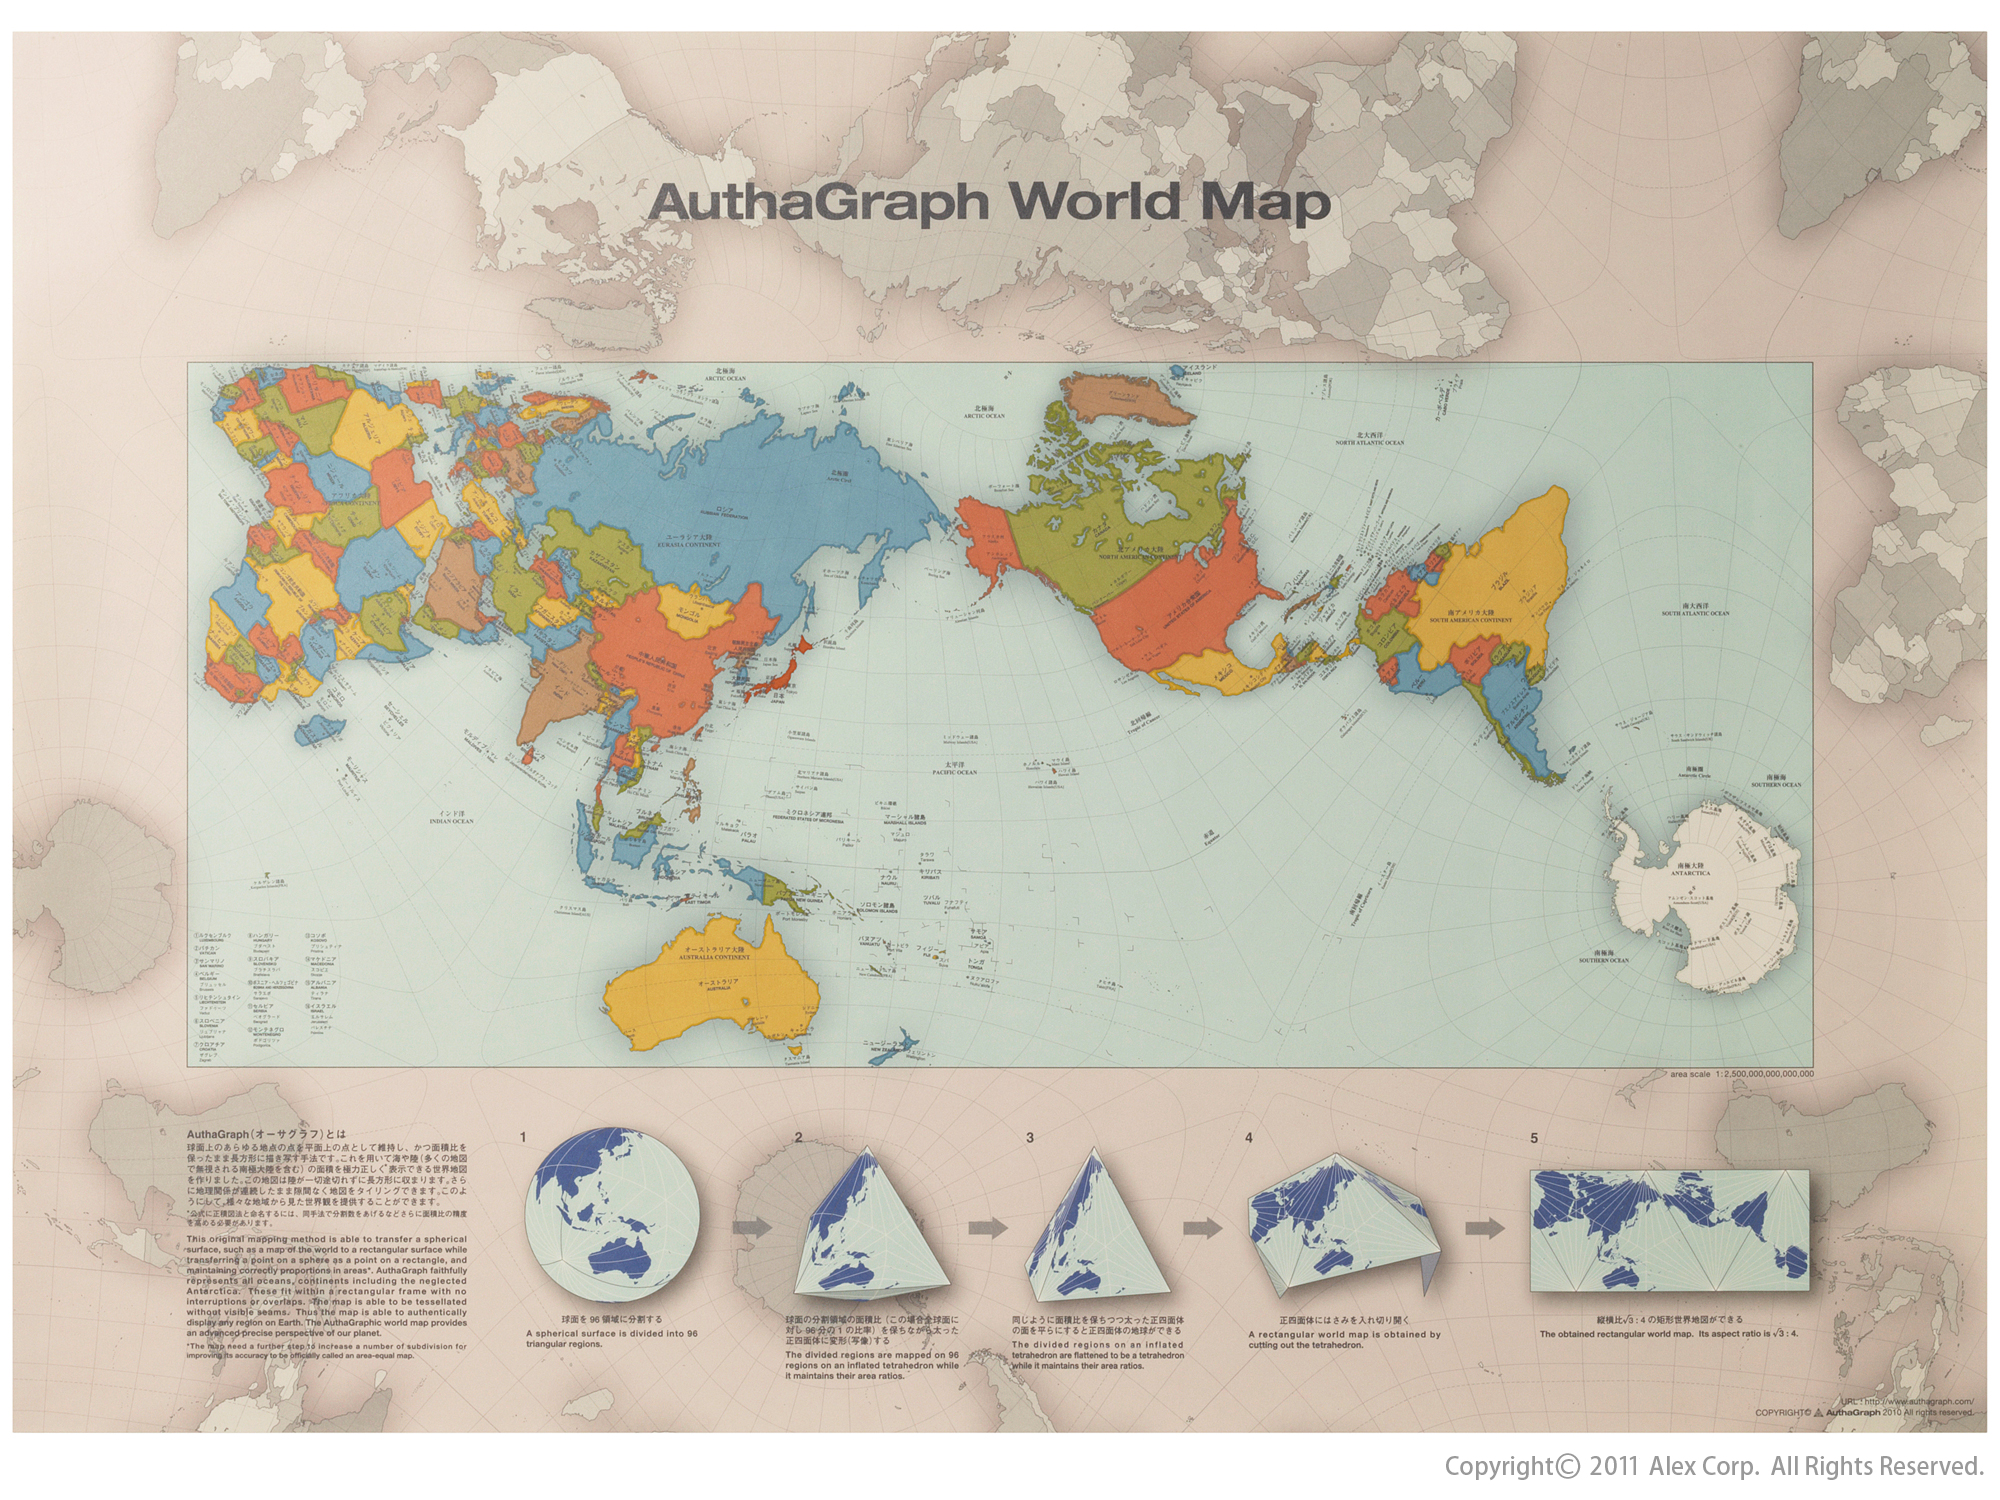 Authagraph world map alexcious alexcious alexcious gumiabroncs Image collections